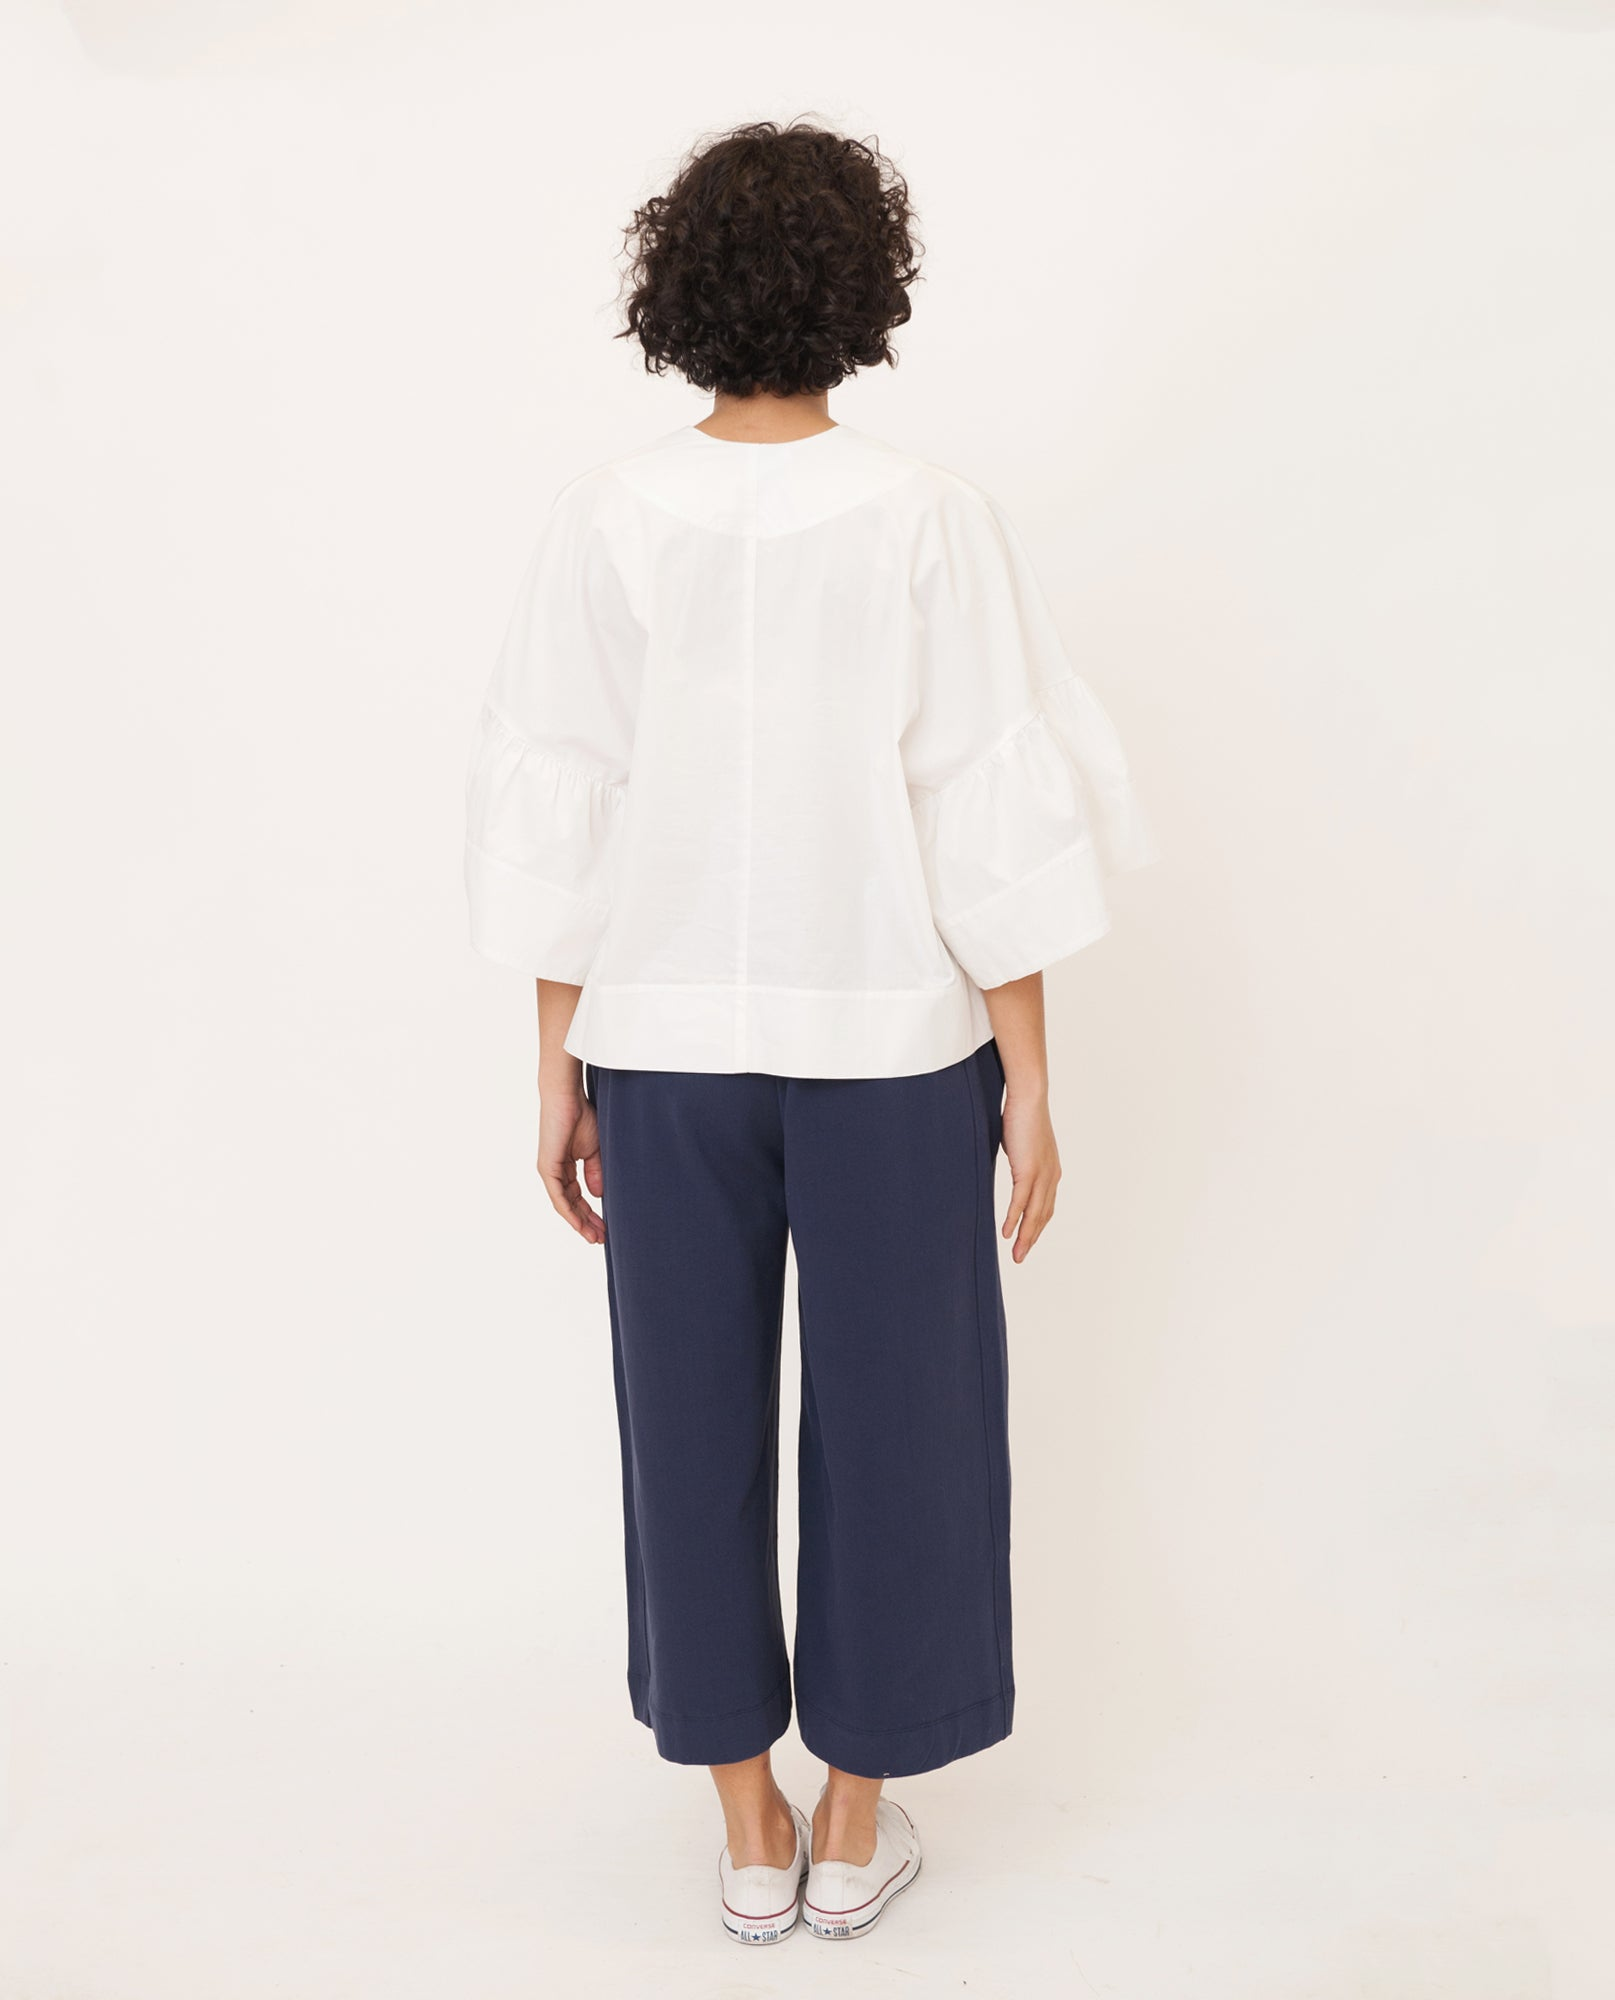 RITA-MAE Cotton Poplin Top In White